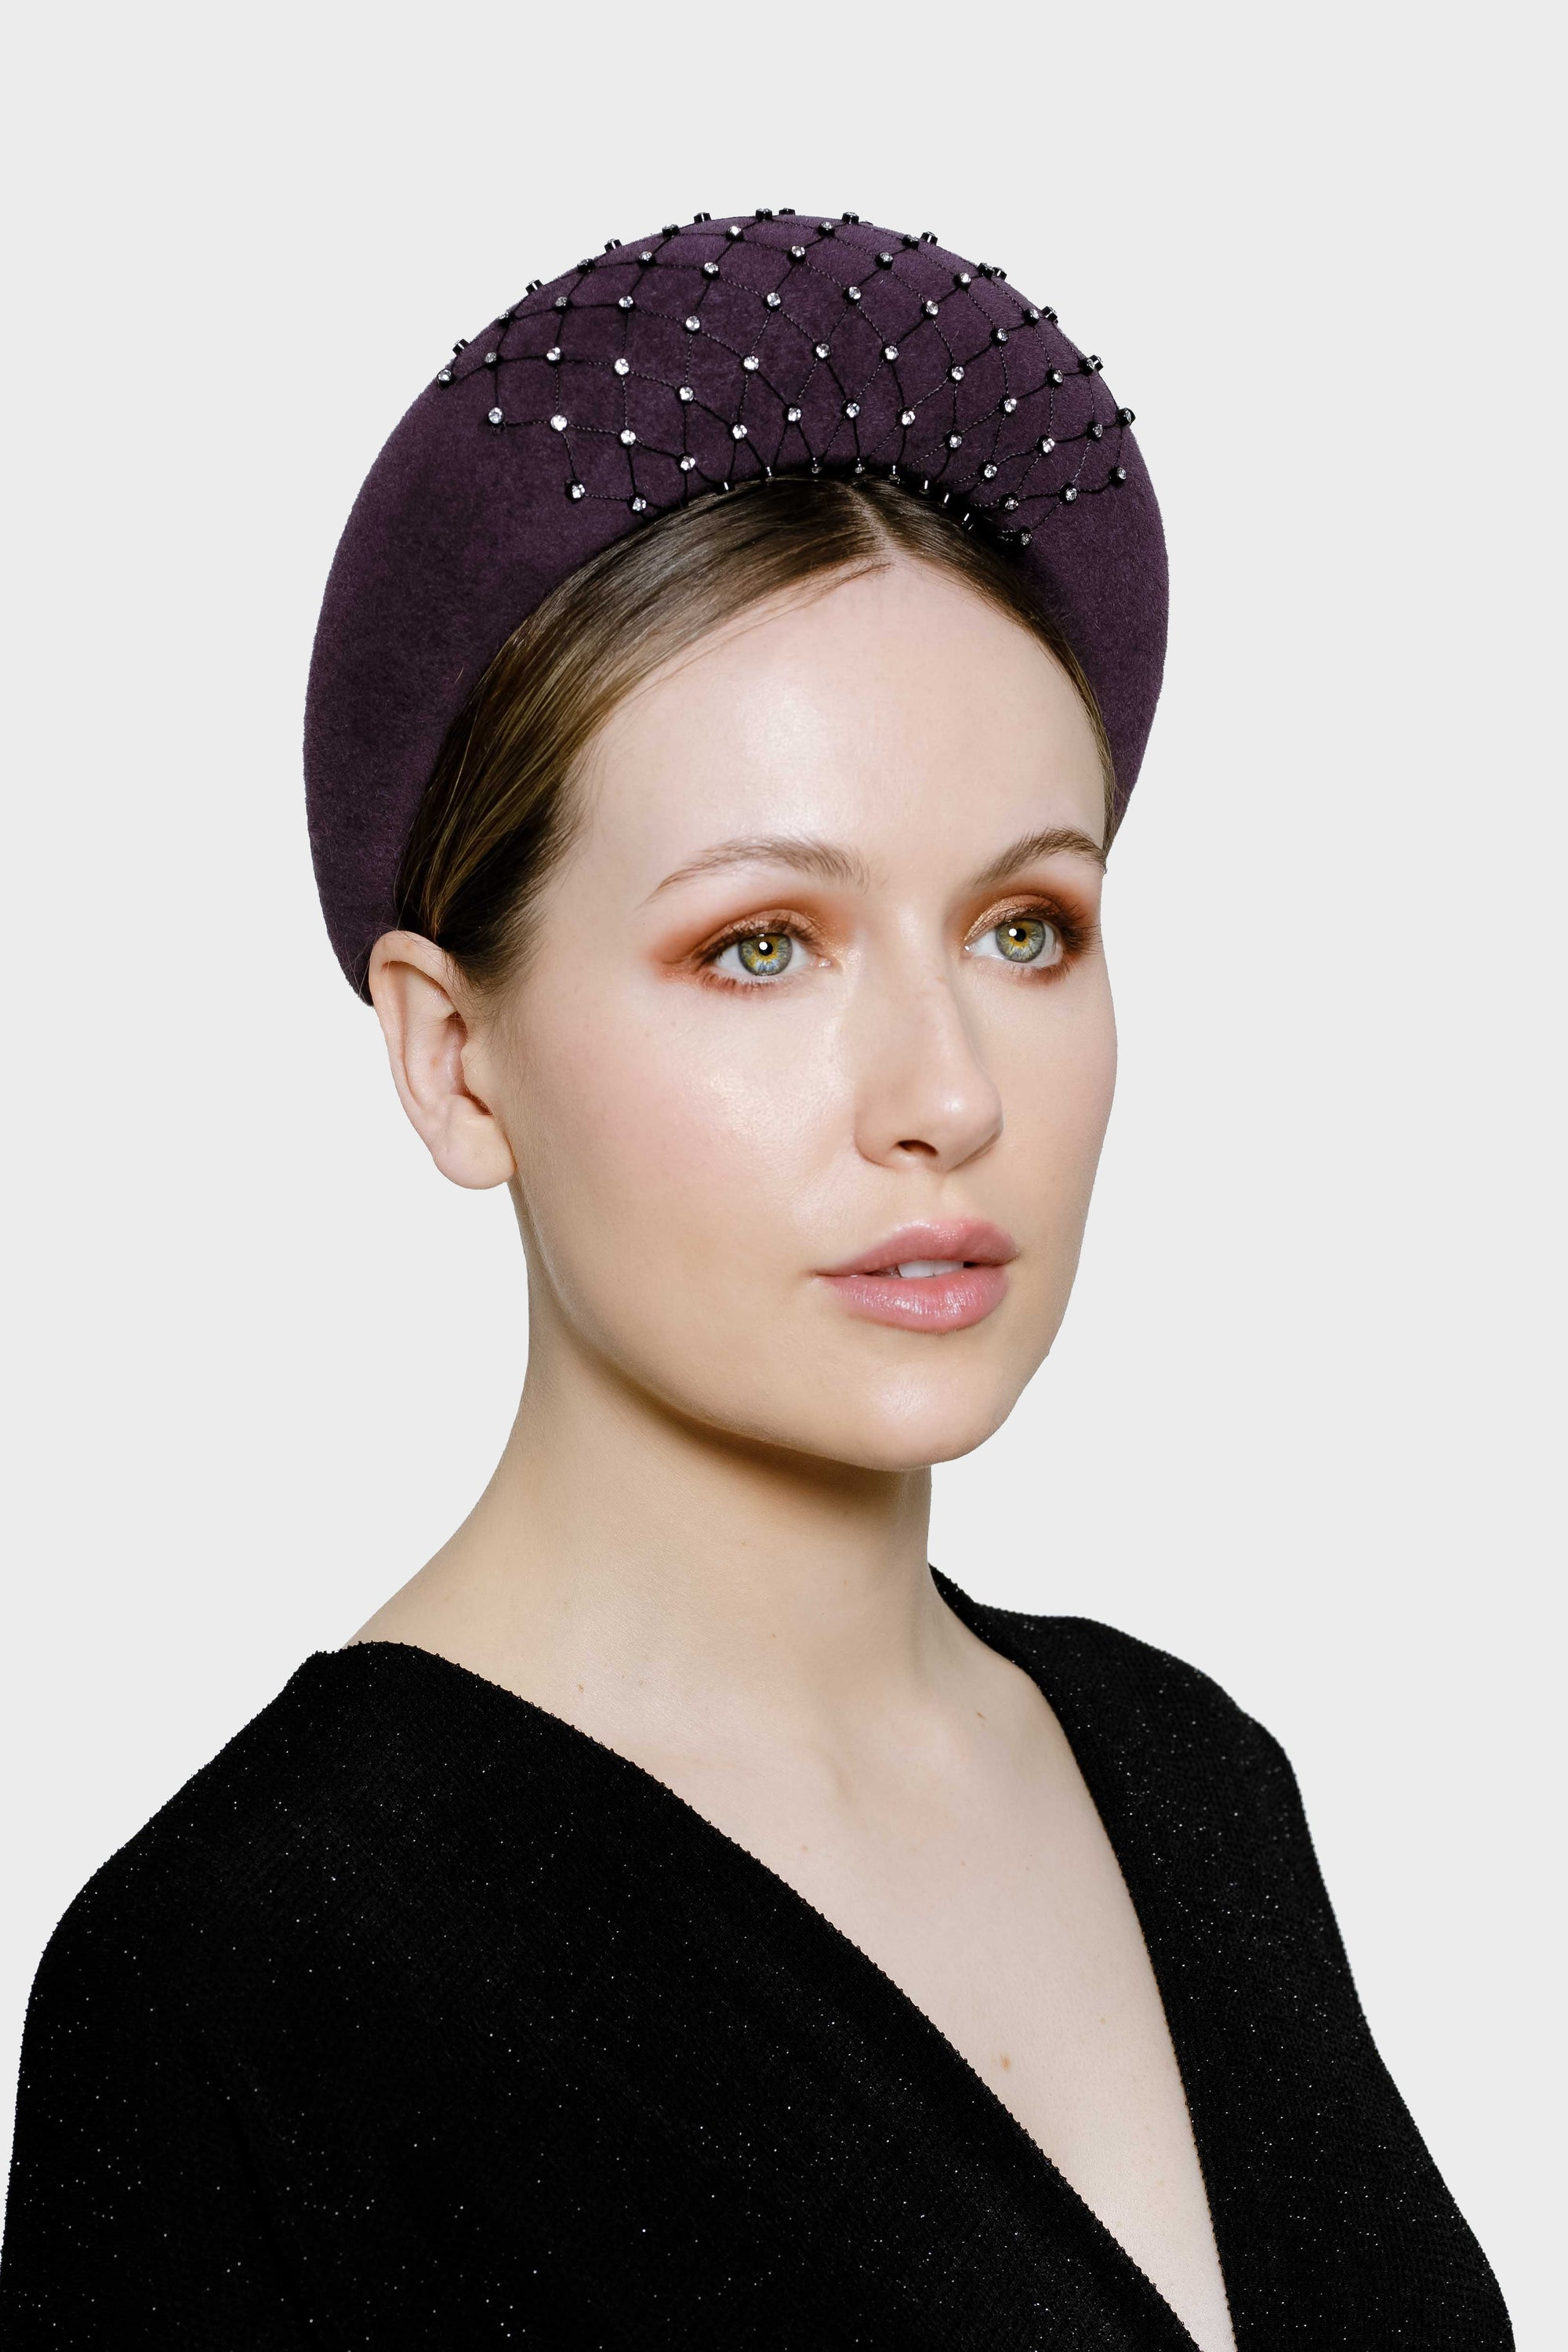 The Annona velour felt headband with diamanté beading is an elegant modern style, ideal for weddings, special occasions and cocktail soirees.